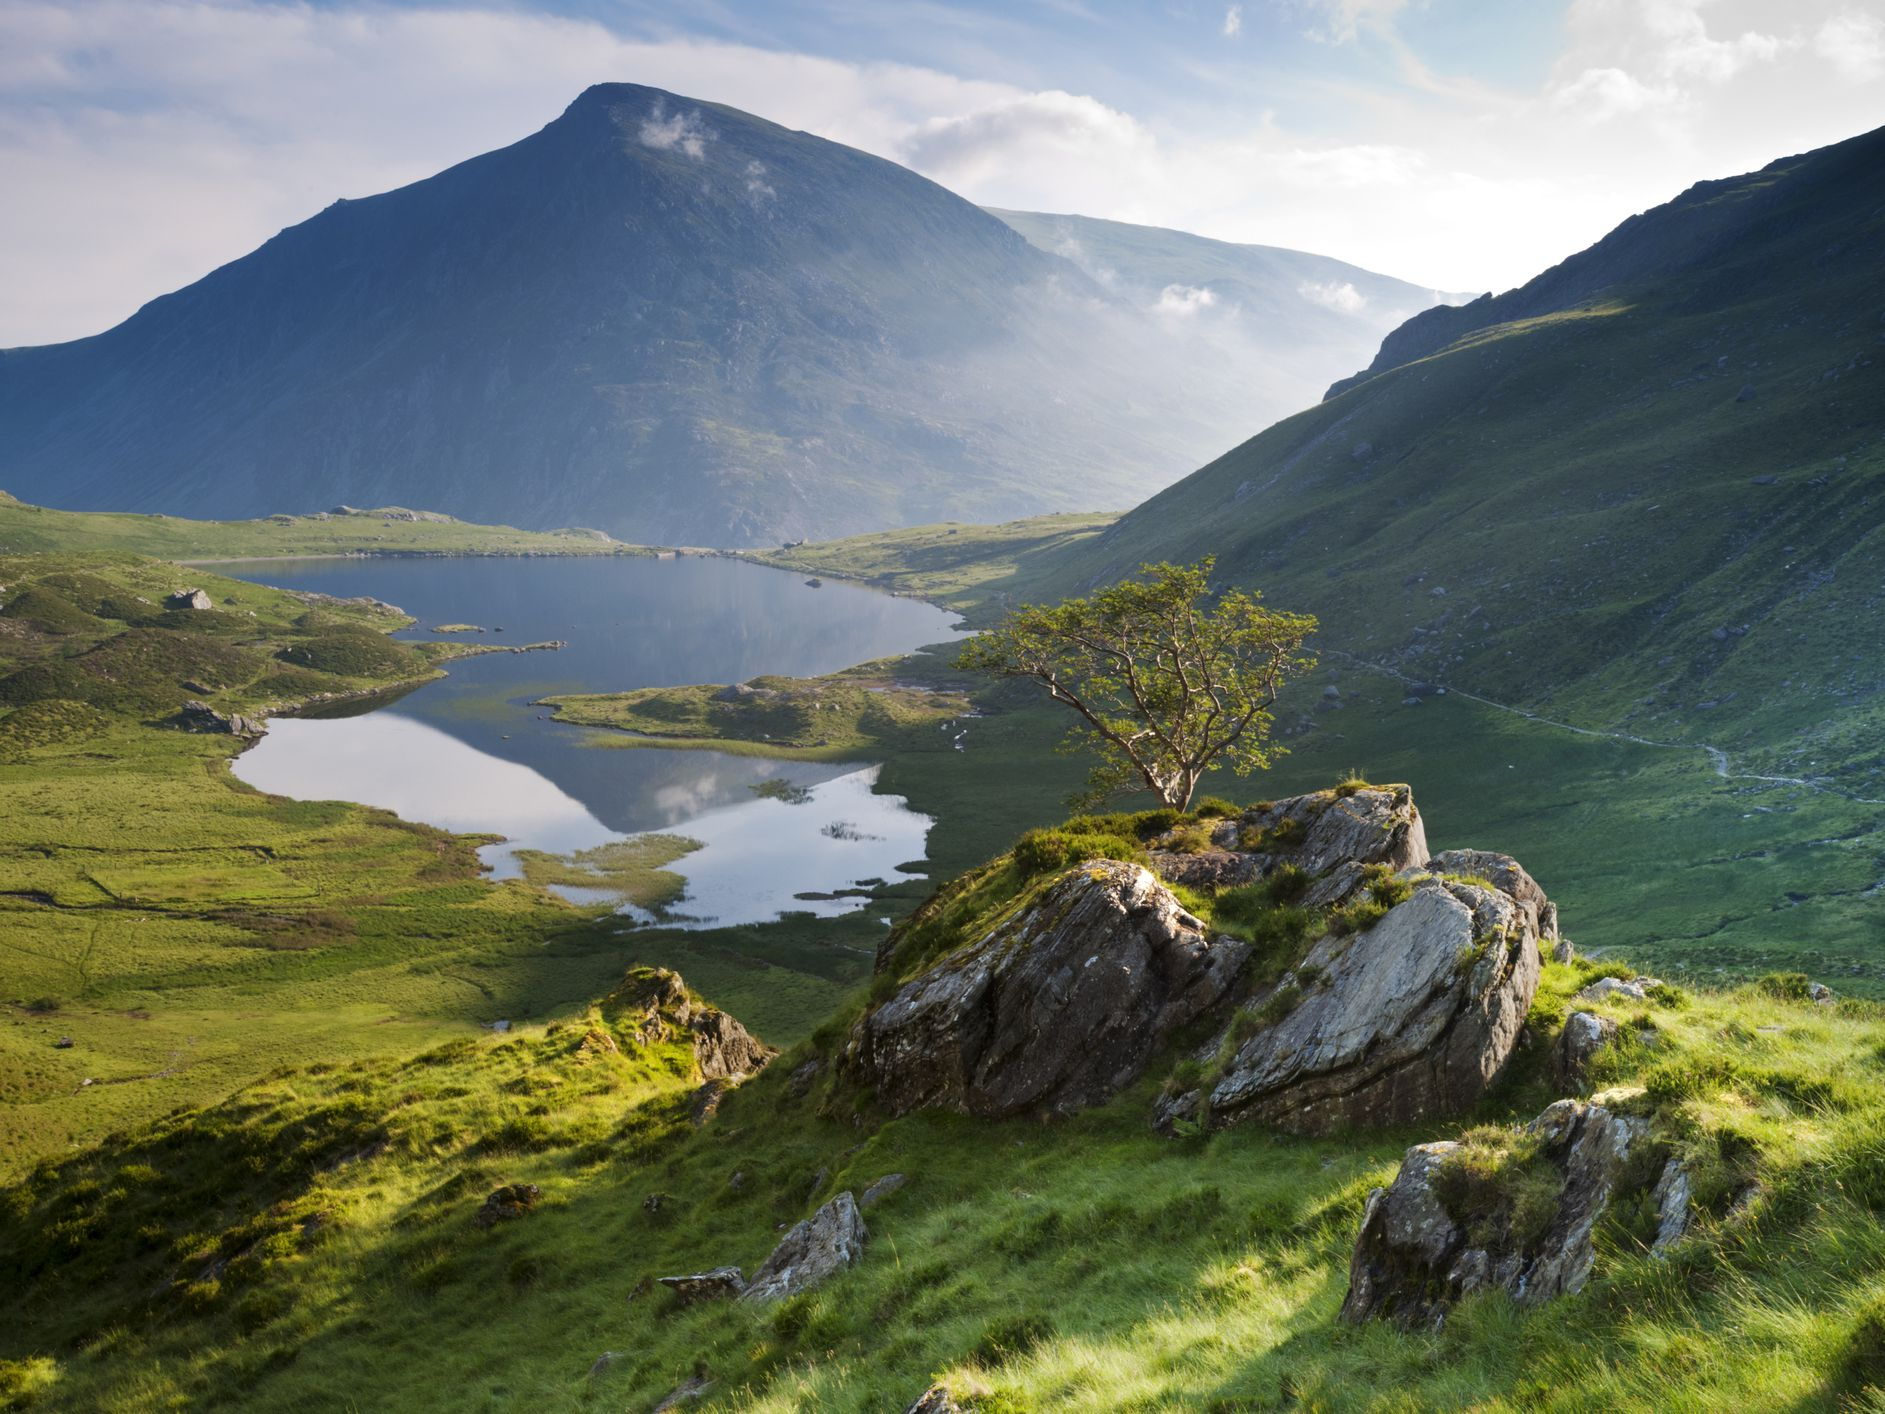 Snowdonia National Park: The Complete Guide